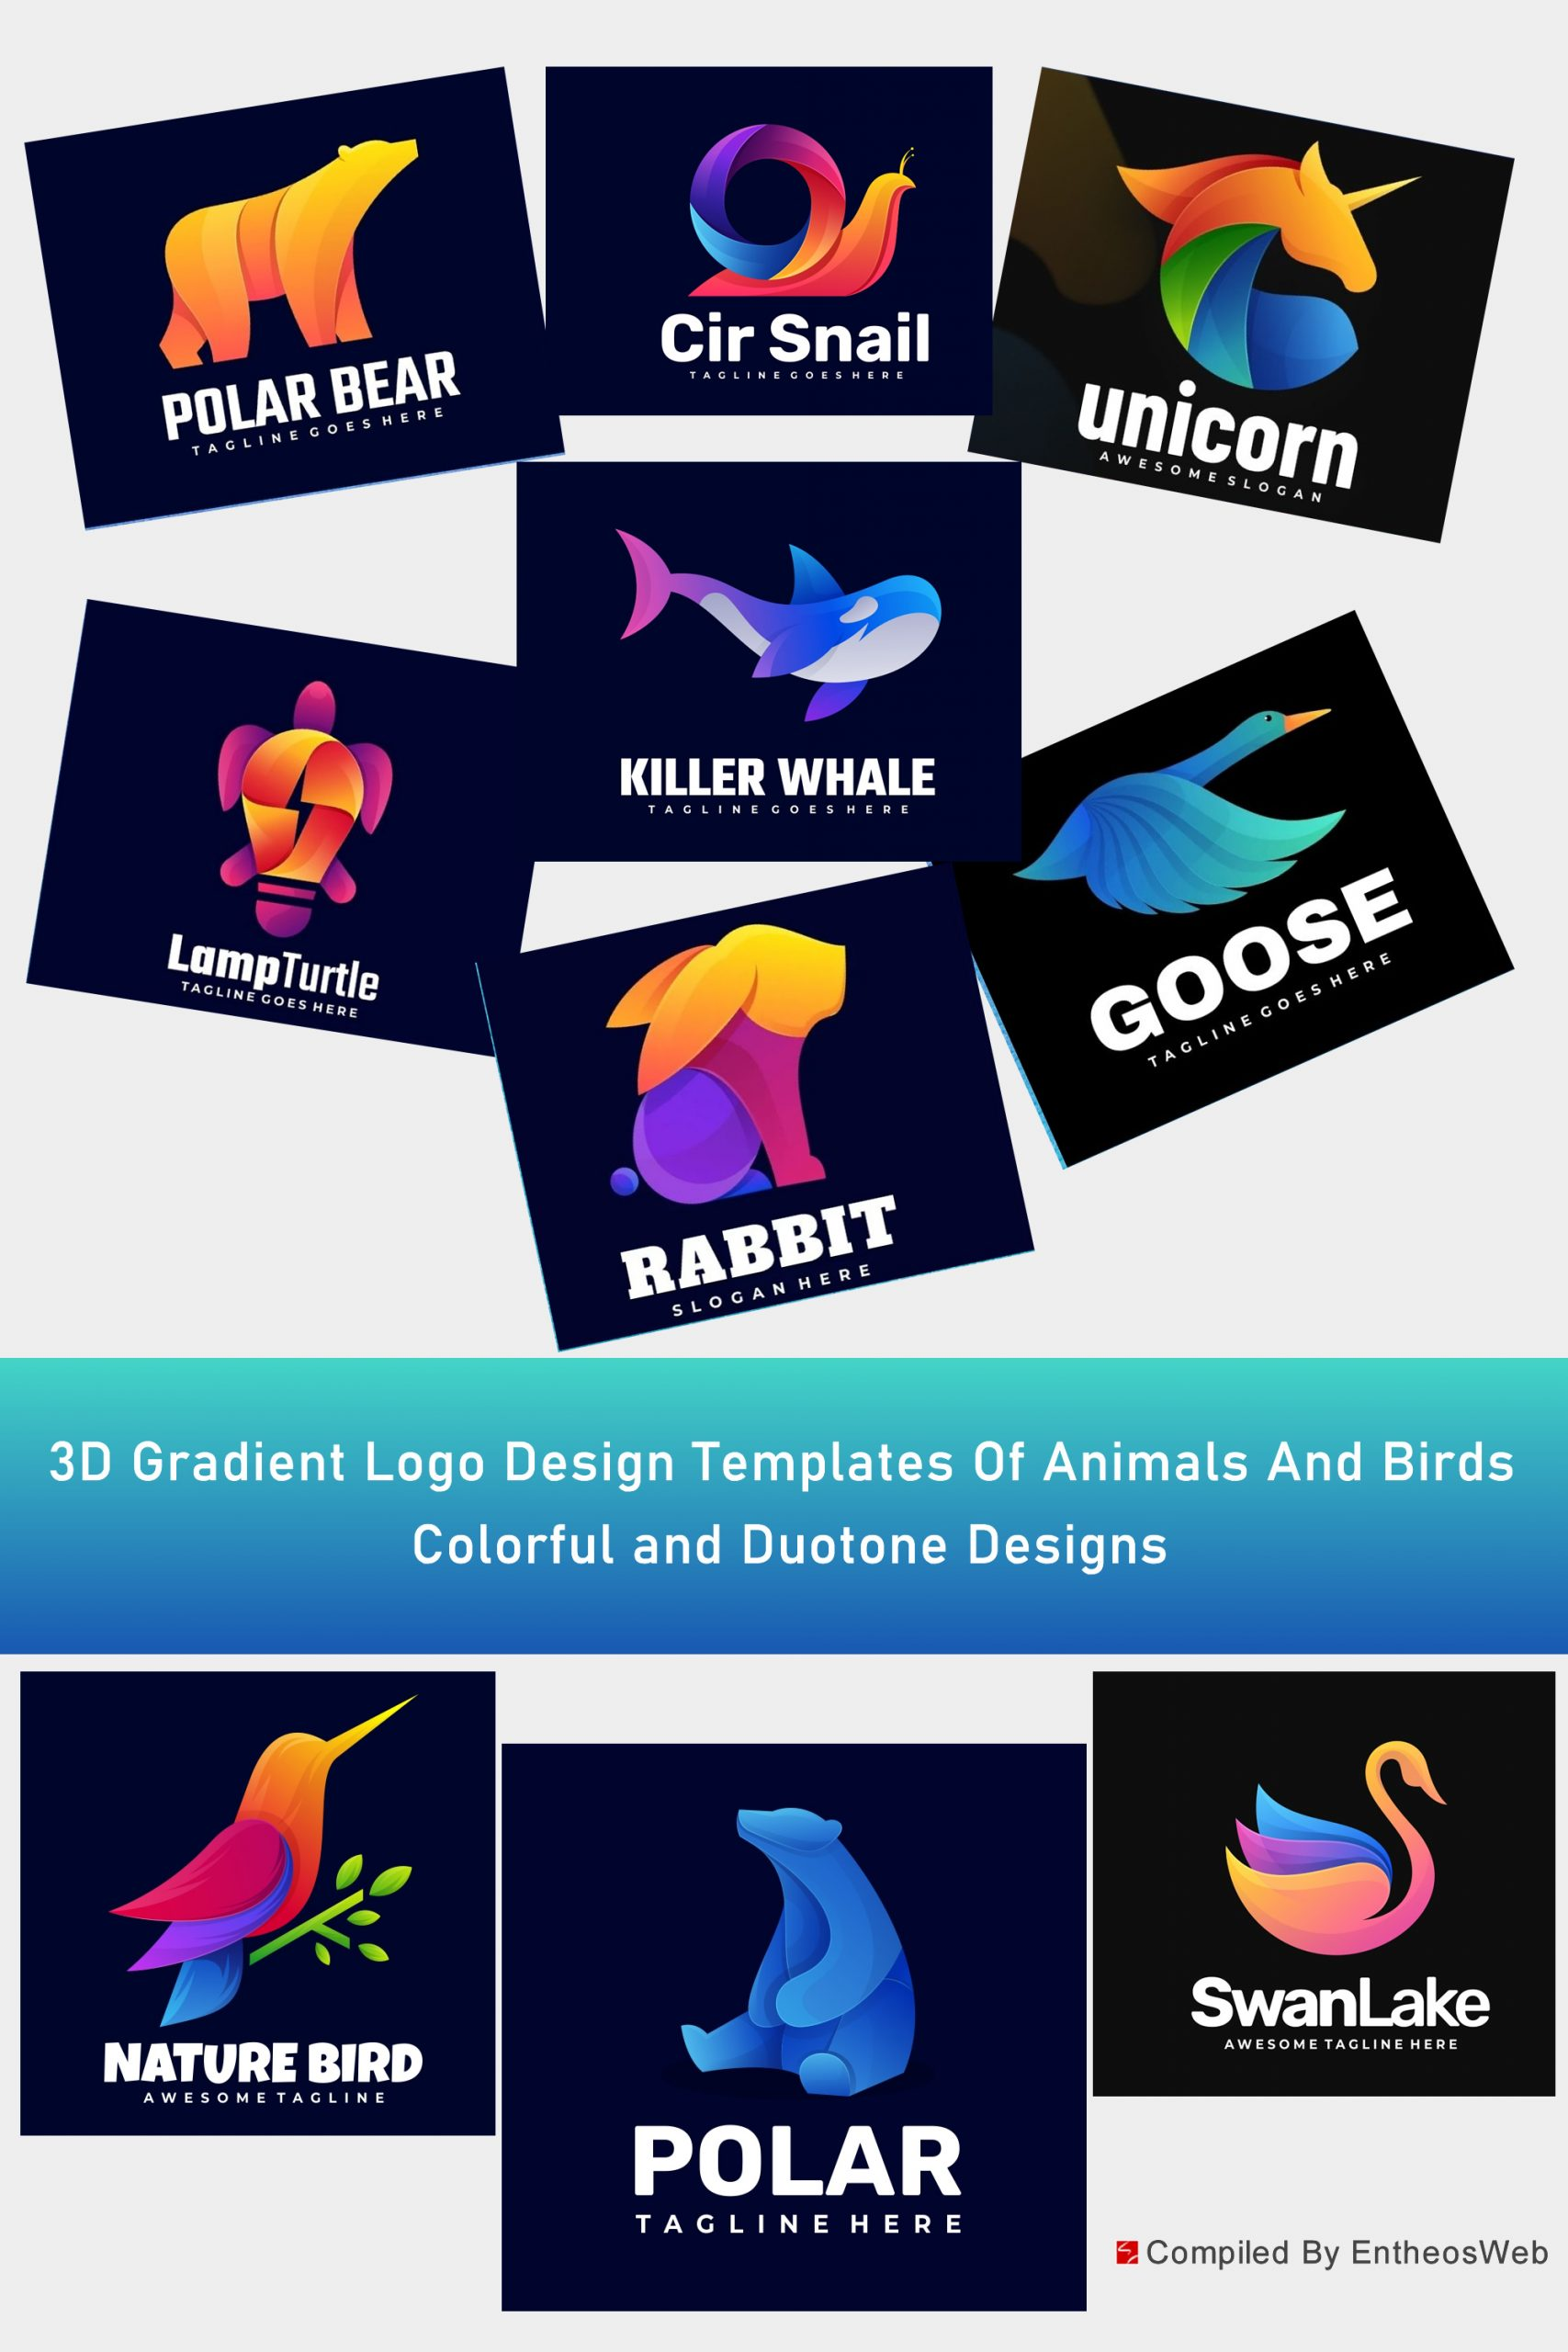 3D Gradient Logo Design Templates Of Animals And Birds - Colorful and Duotone Designs